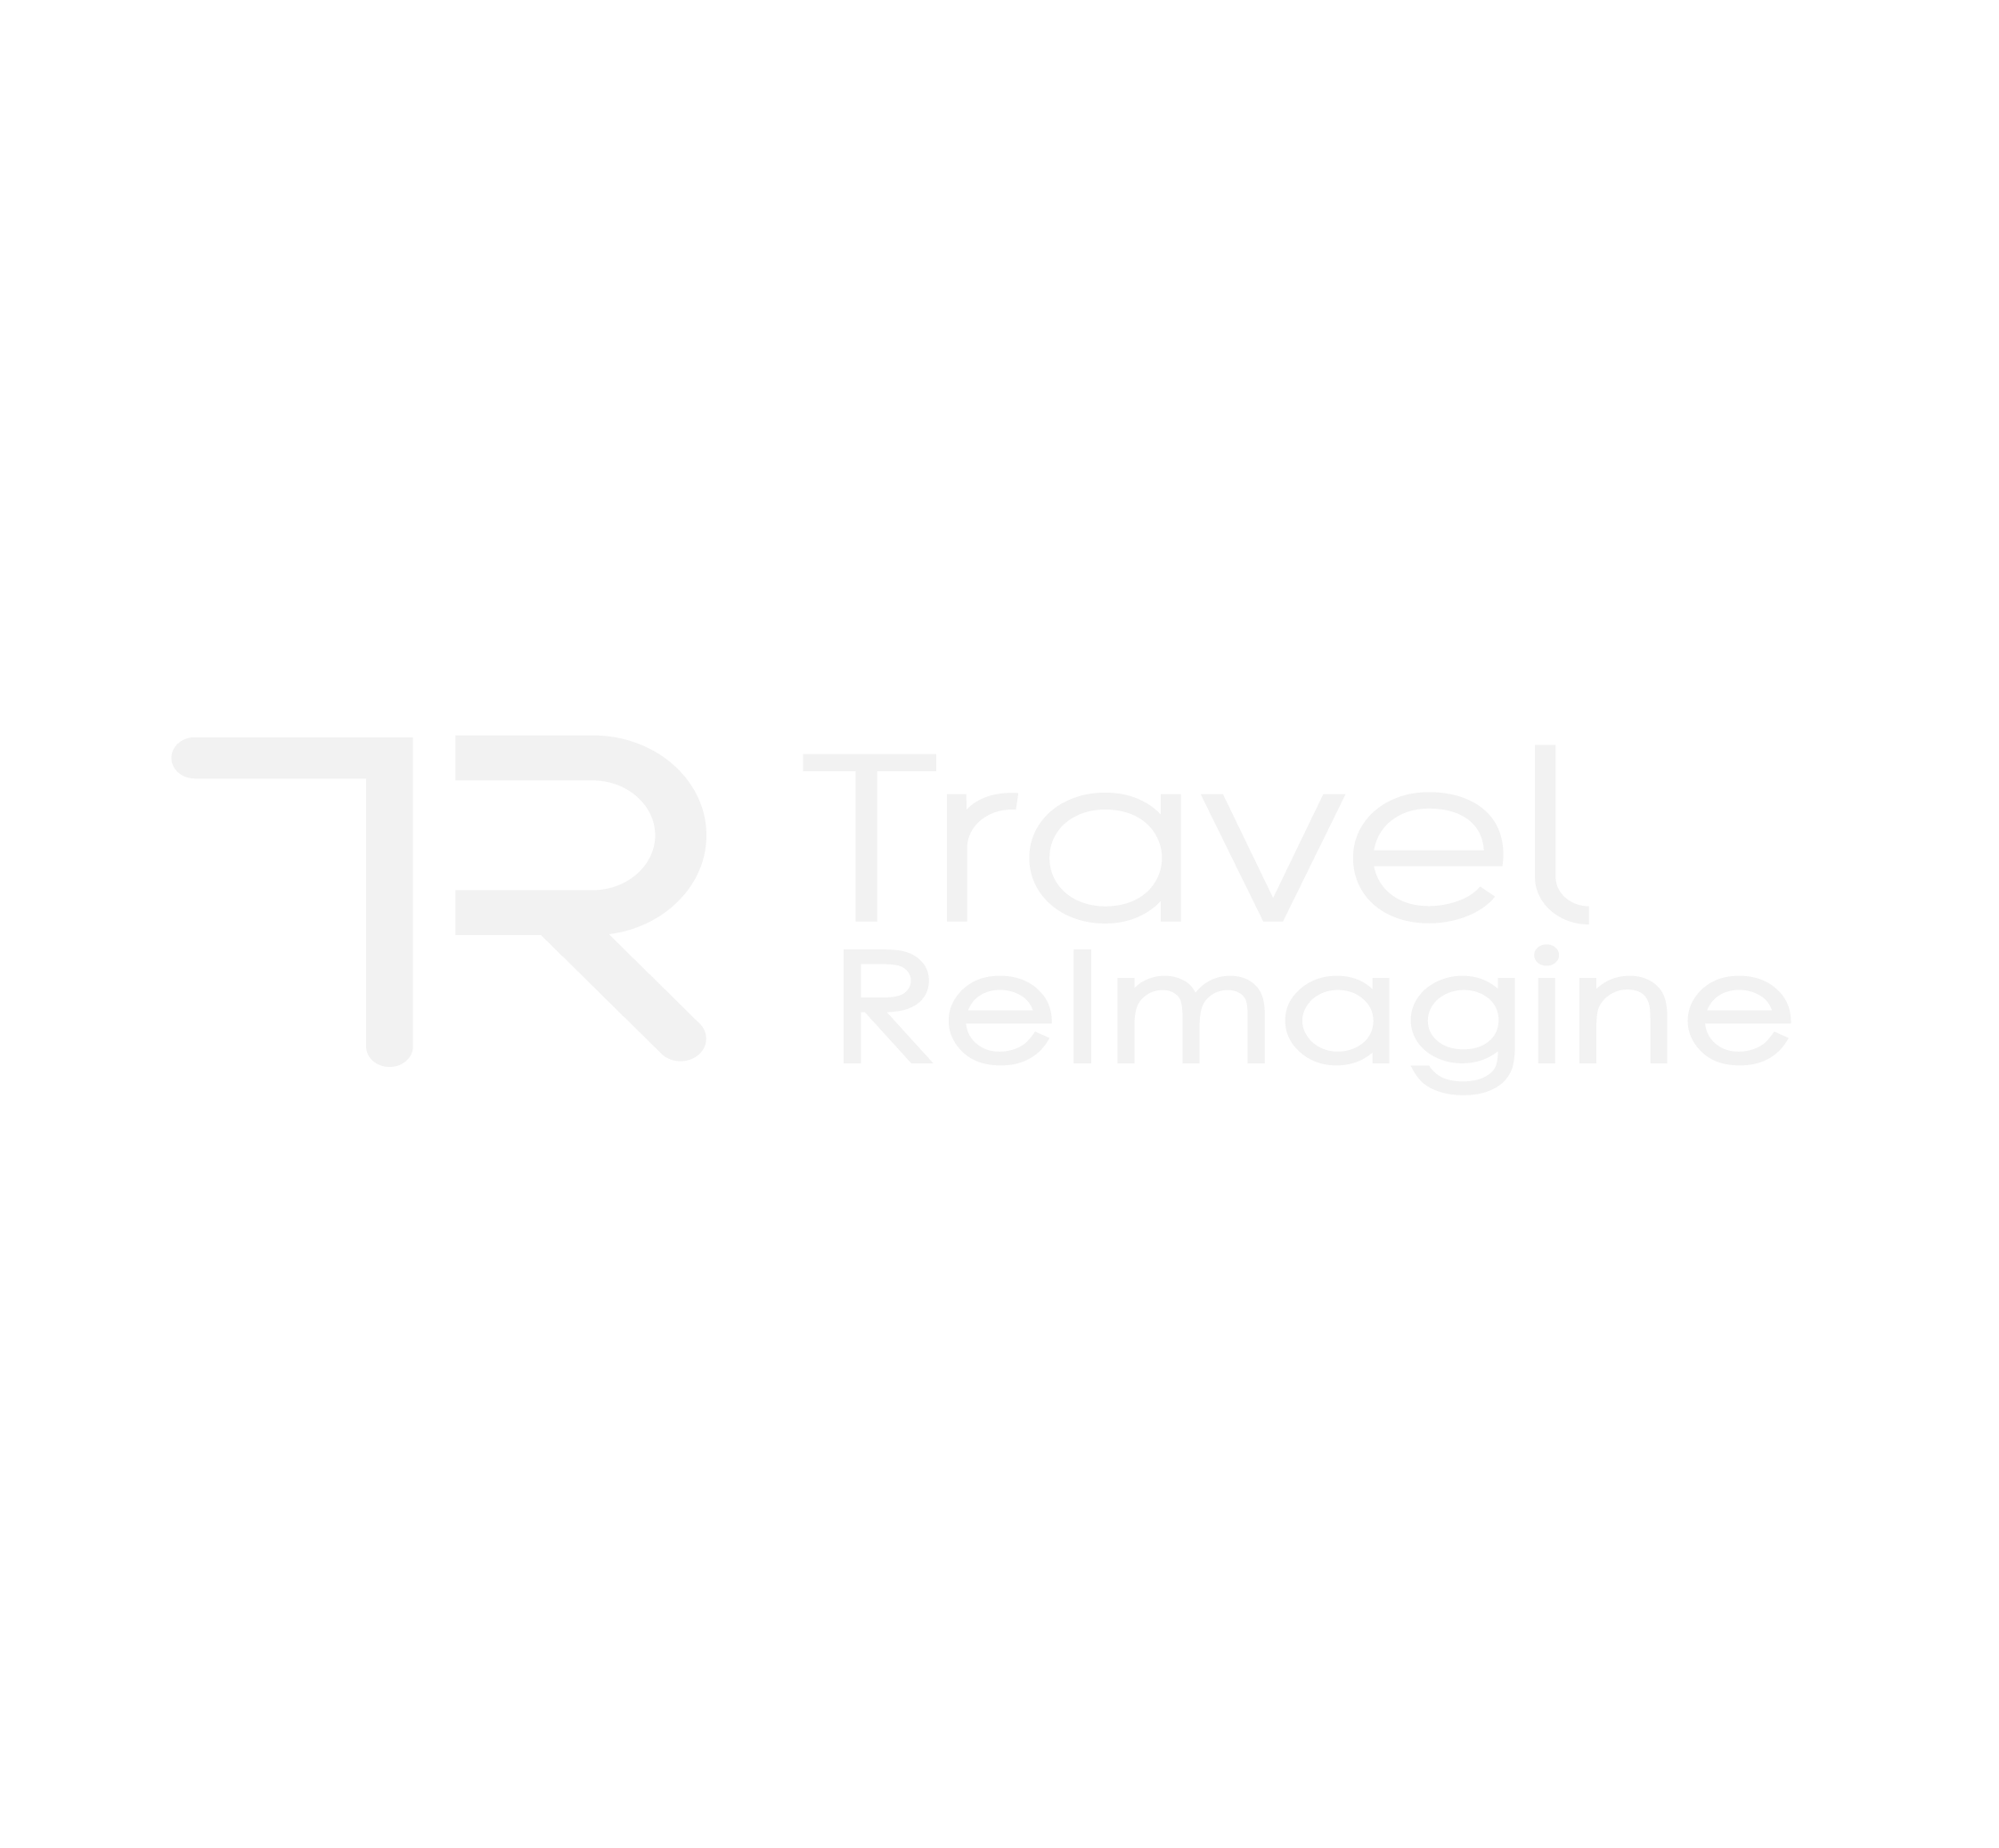 Travel Reimagine logo